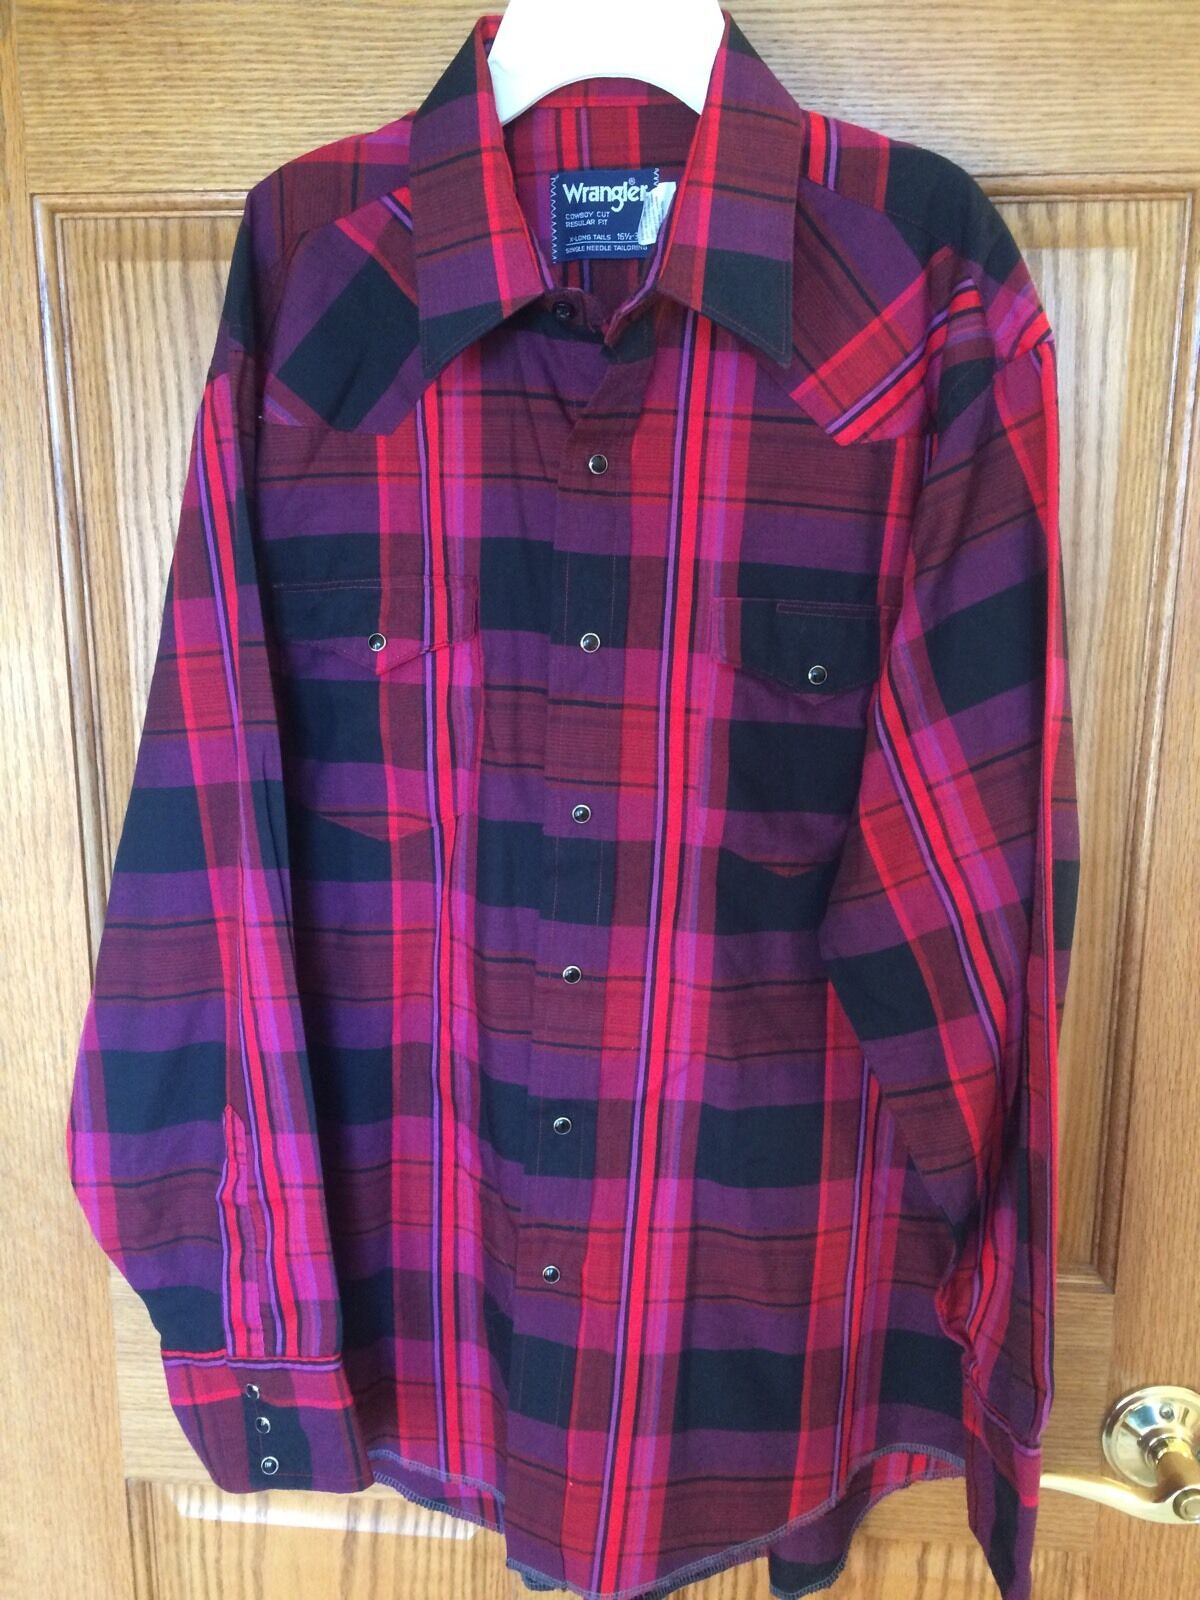 Vintage Wrangler Plaid Pearl Snap Cowboy Rodeo Western Shirt X-Long Tails bx16